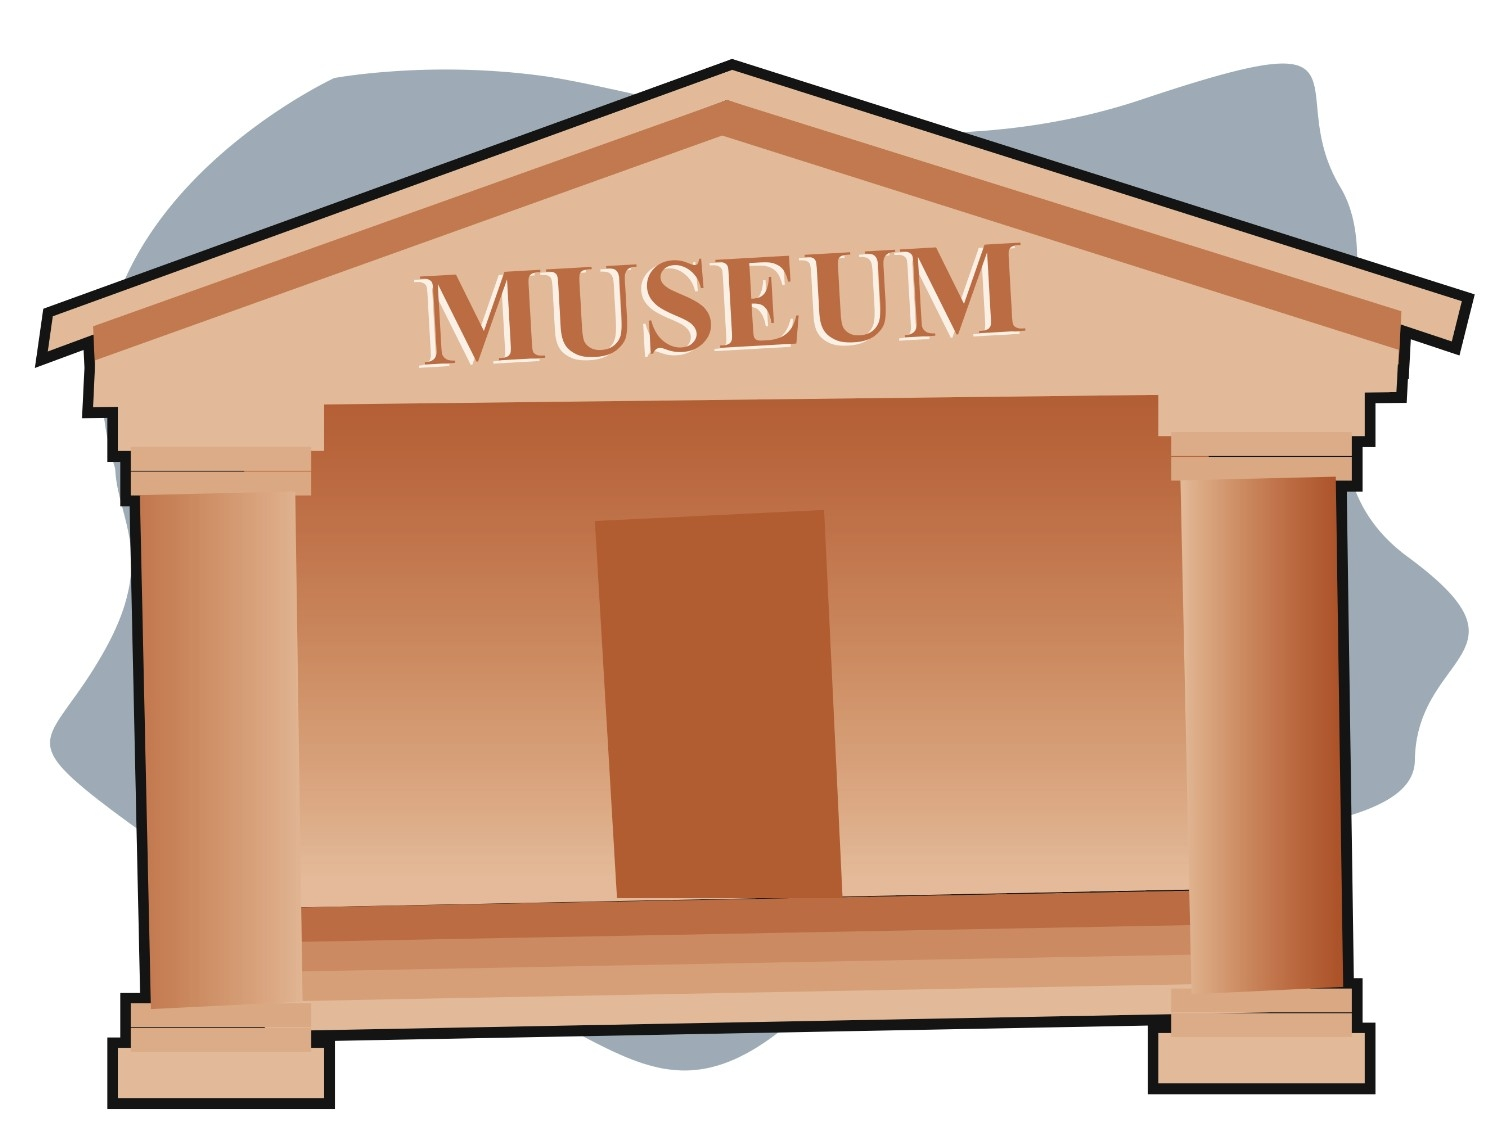 Museum clipart exhibit. Free illustration of kids